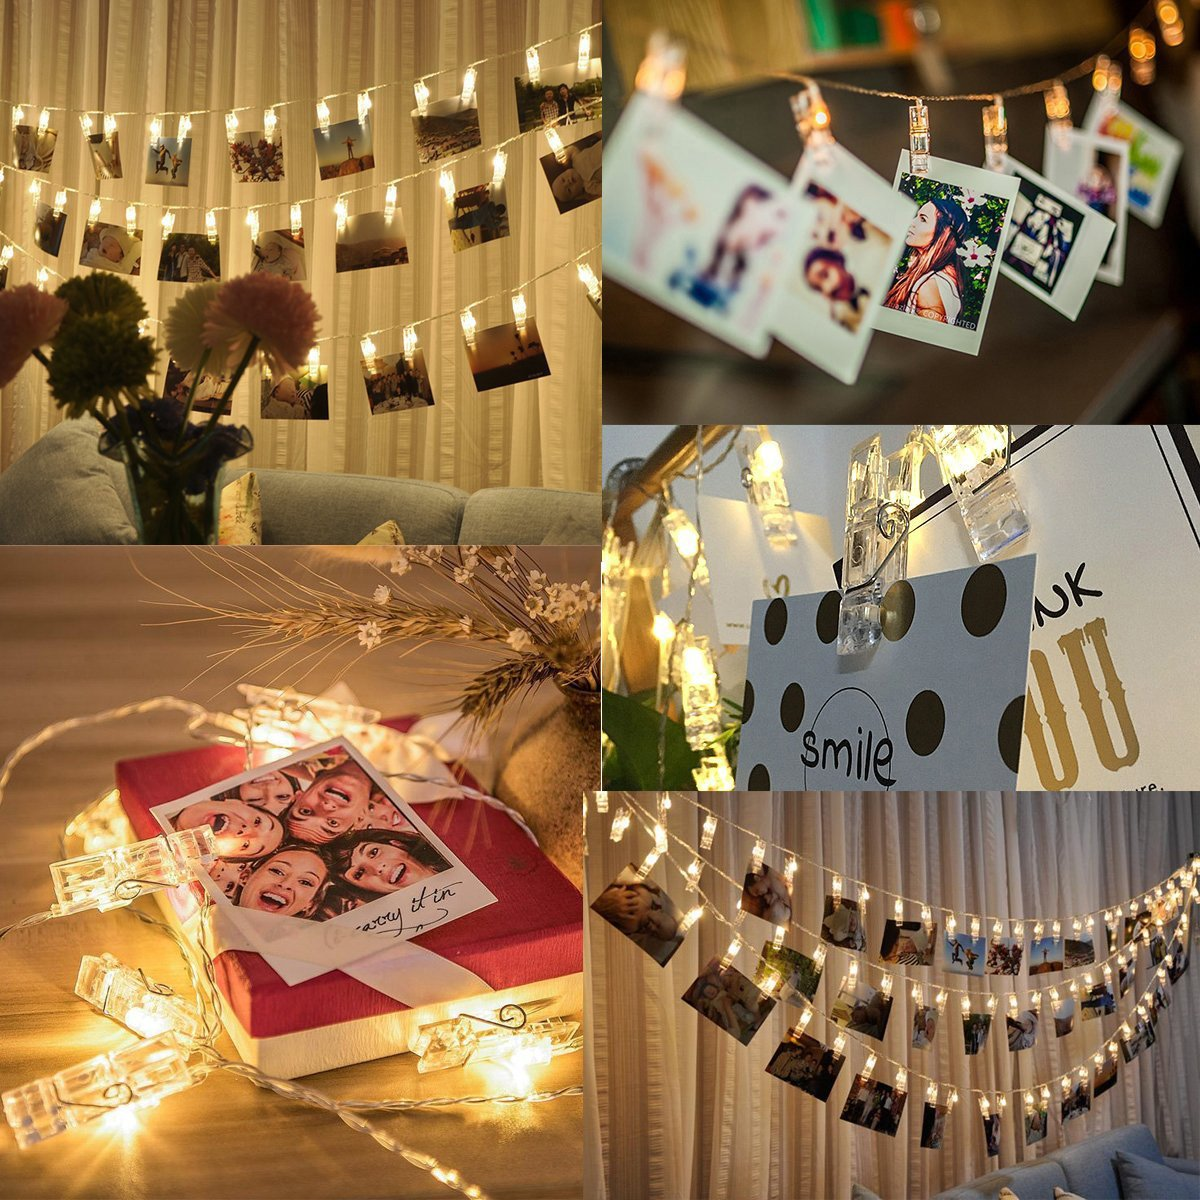 50 USB Powered LED Photo Clip String Lights Christmas String Lights Indoor/Outdoor Gorgeous Warm White Light - for Hanging Photos Pictures Cards and Memos (Warm White)